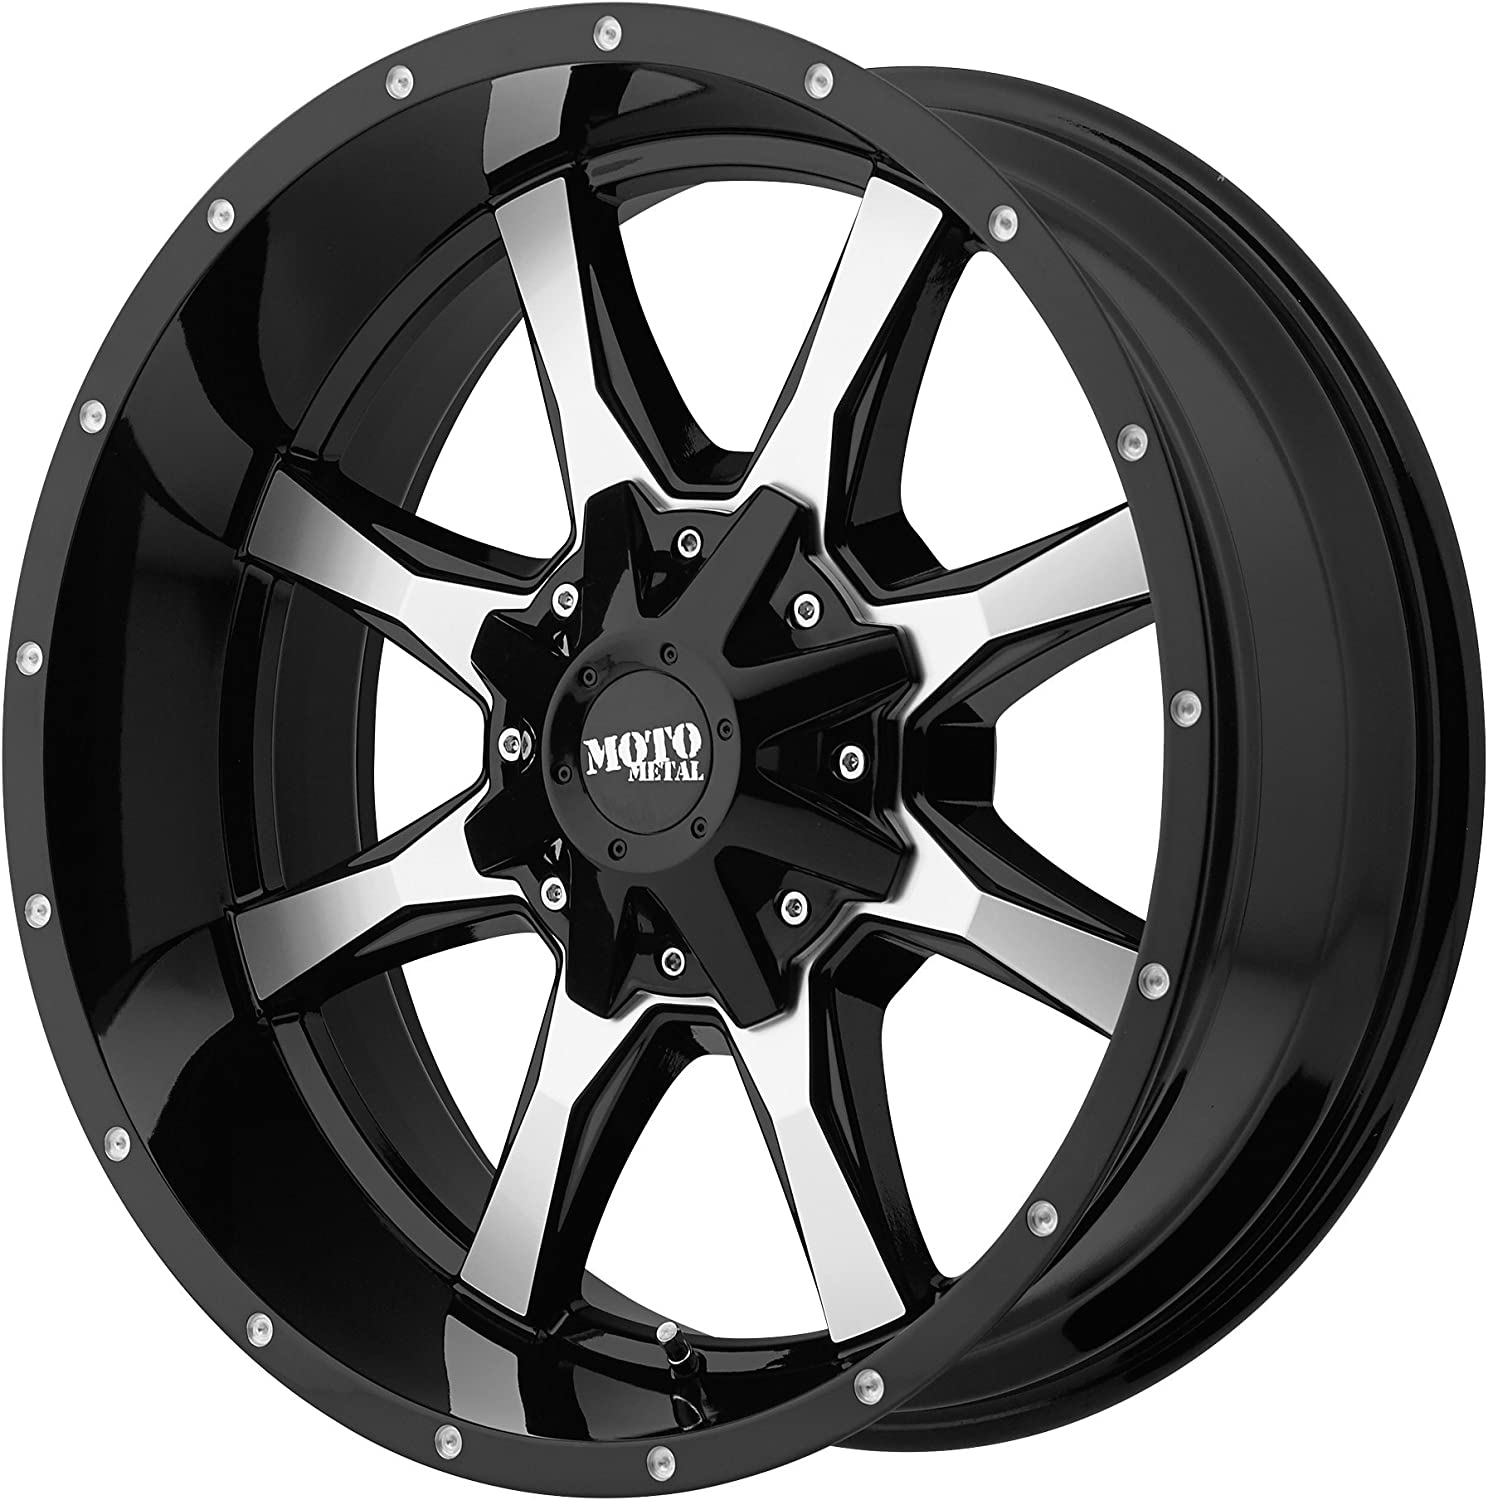 18x9//8x165.1mm, +18mm offset Moto Metal MO970 Gloss Black Wheel Machined with Milled Accents